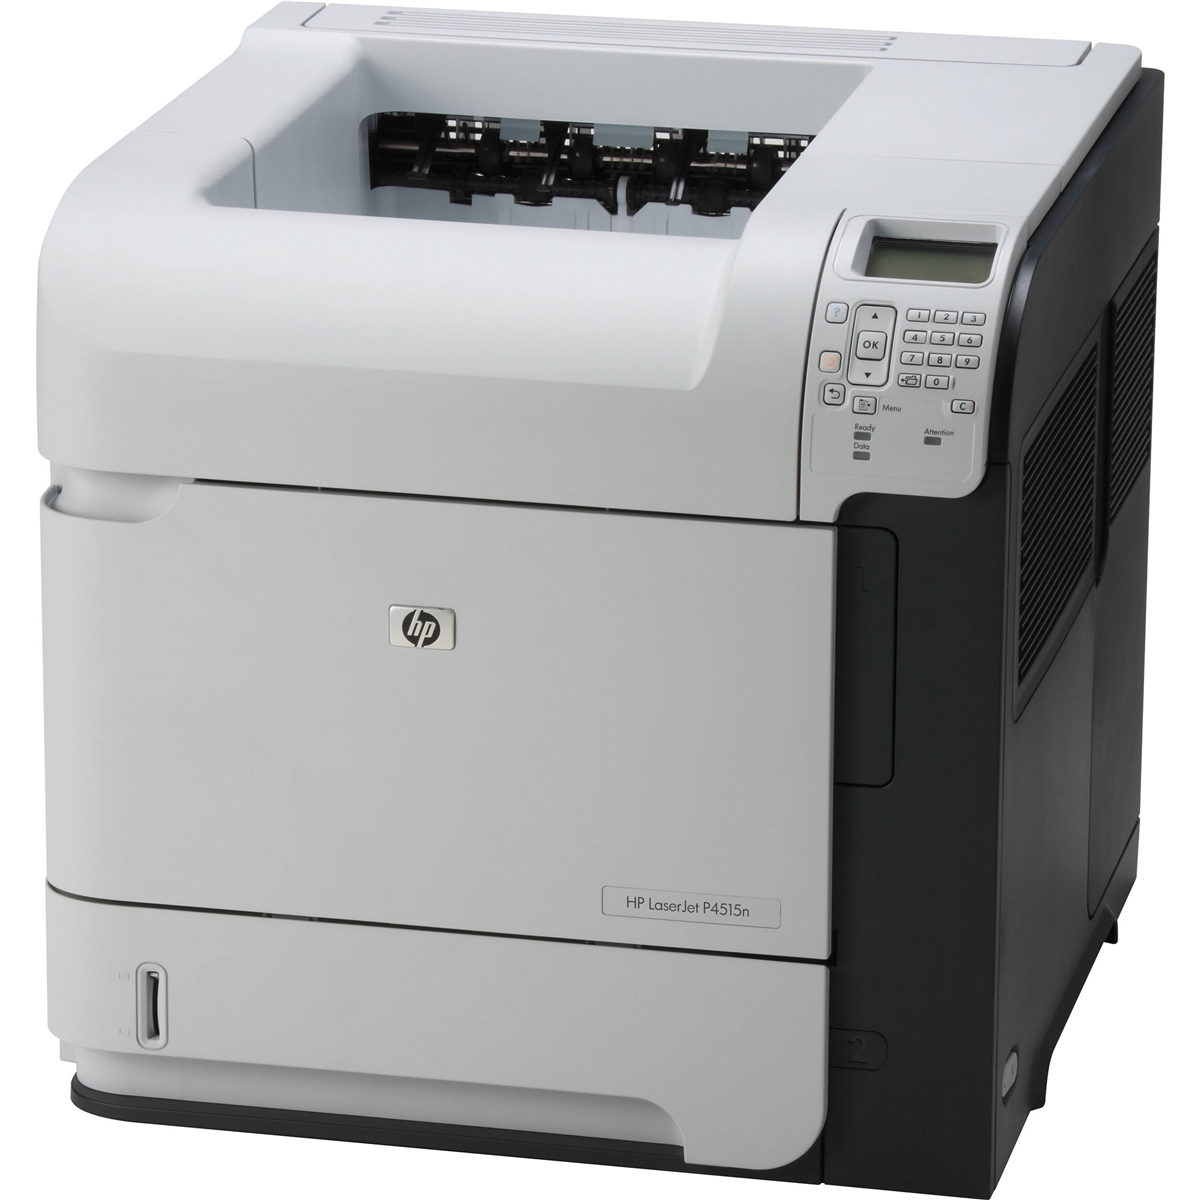 en series hp feeder laserjet tasks printer an envelope printing